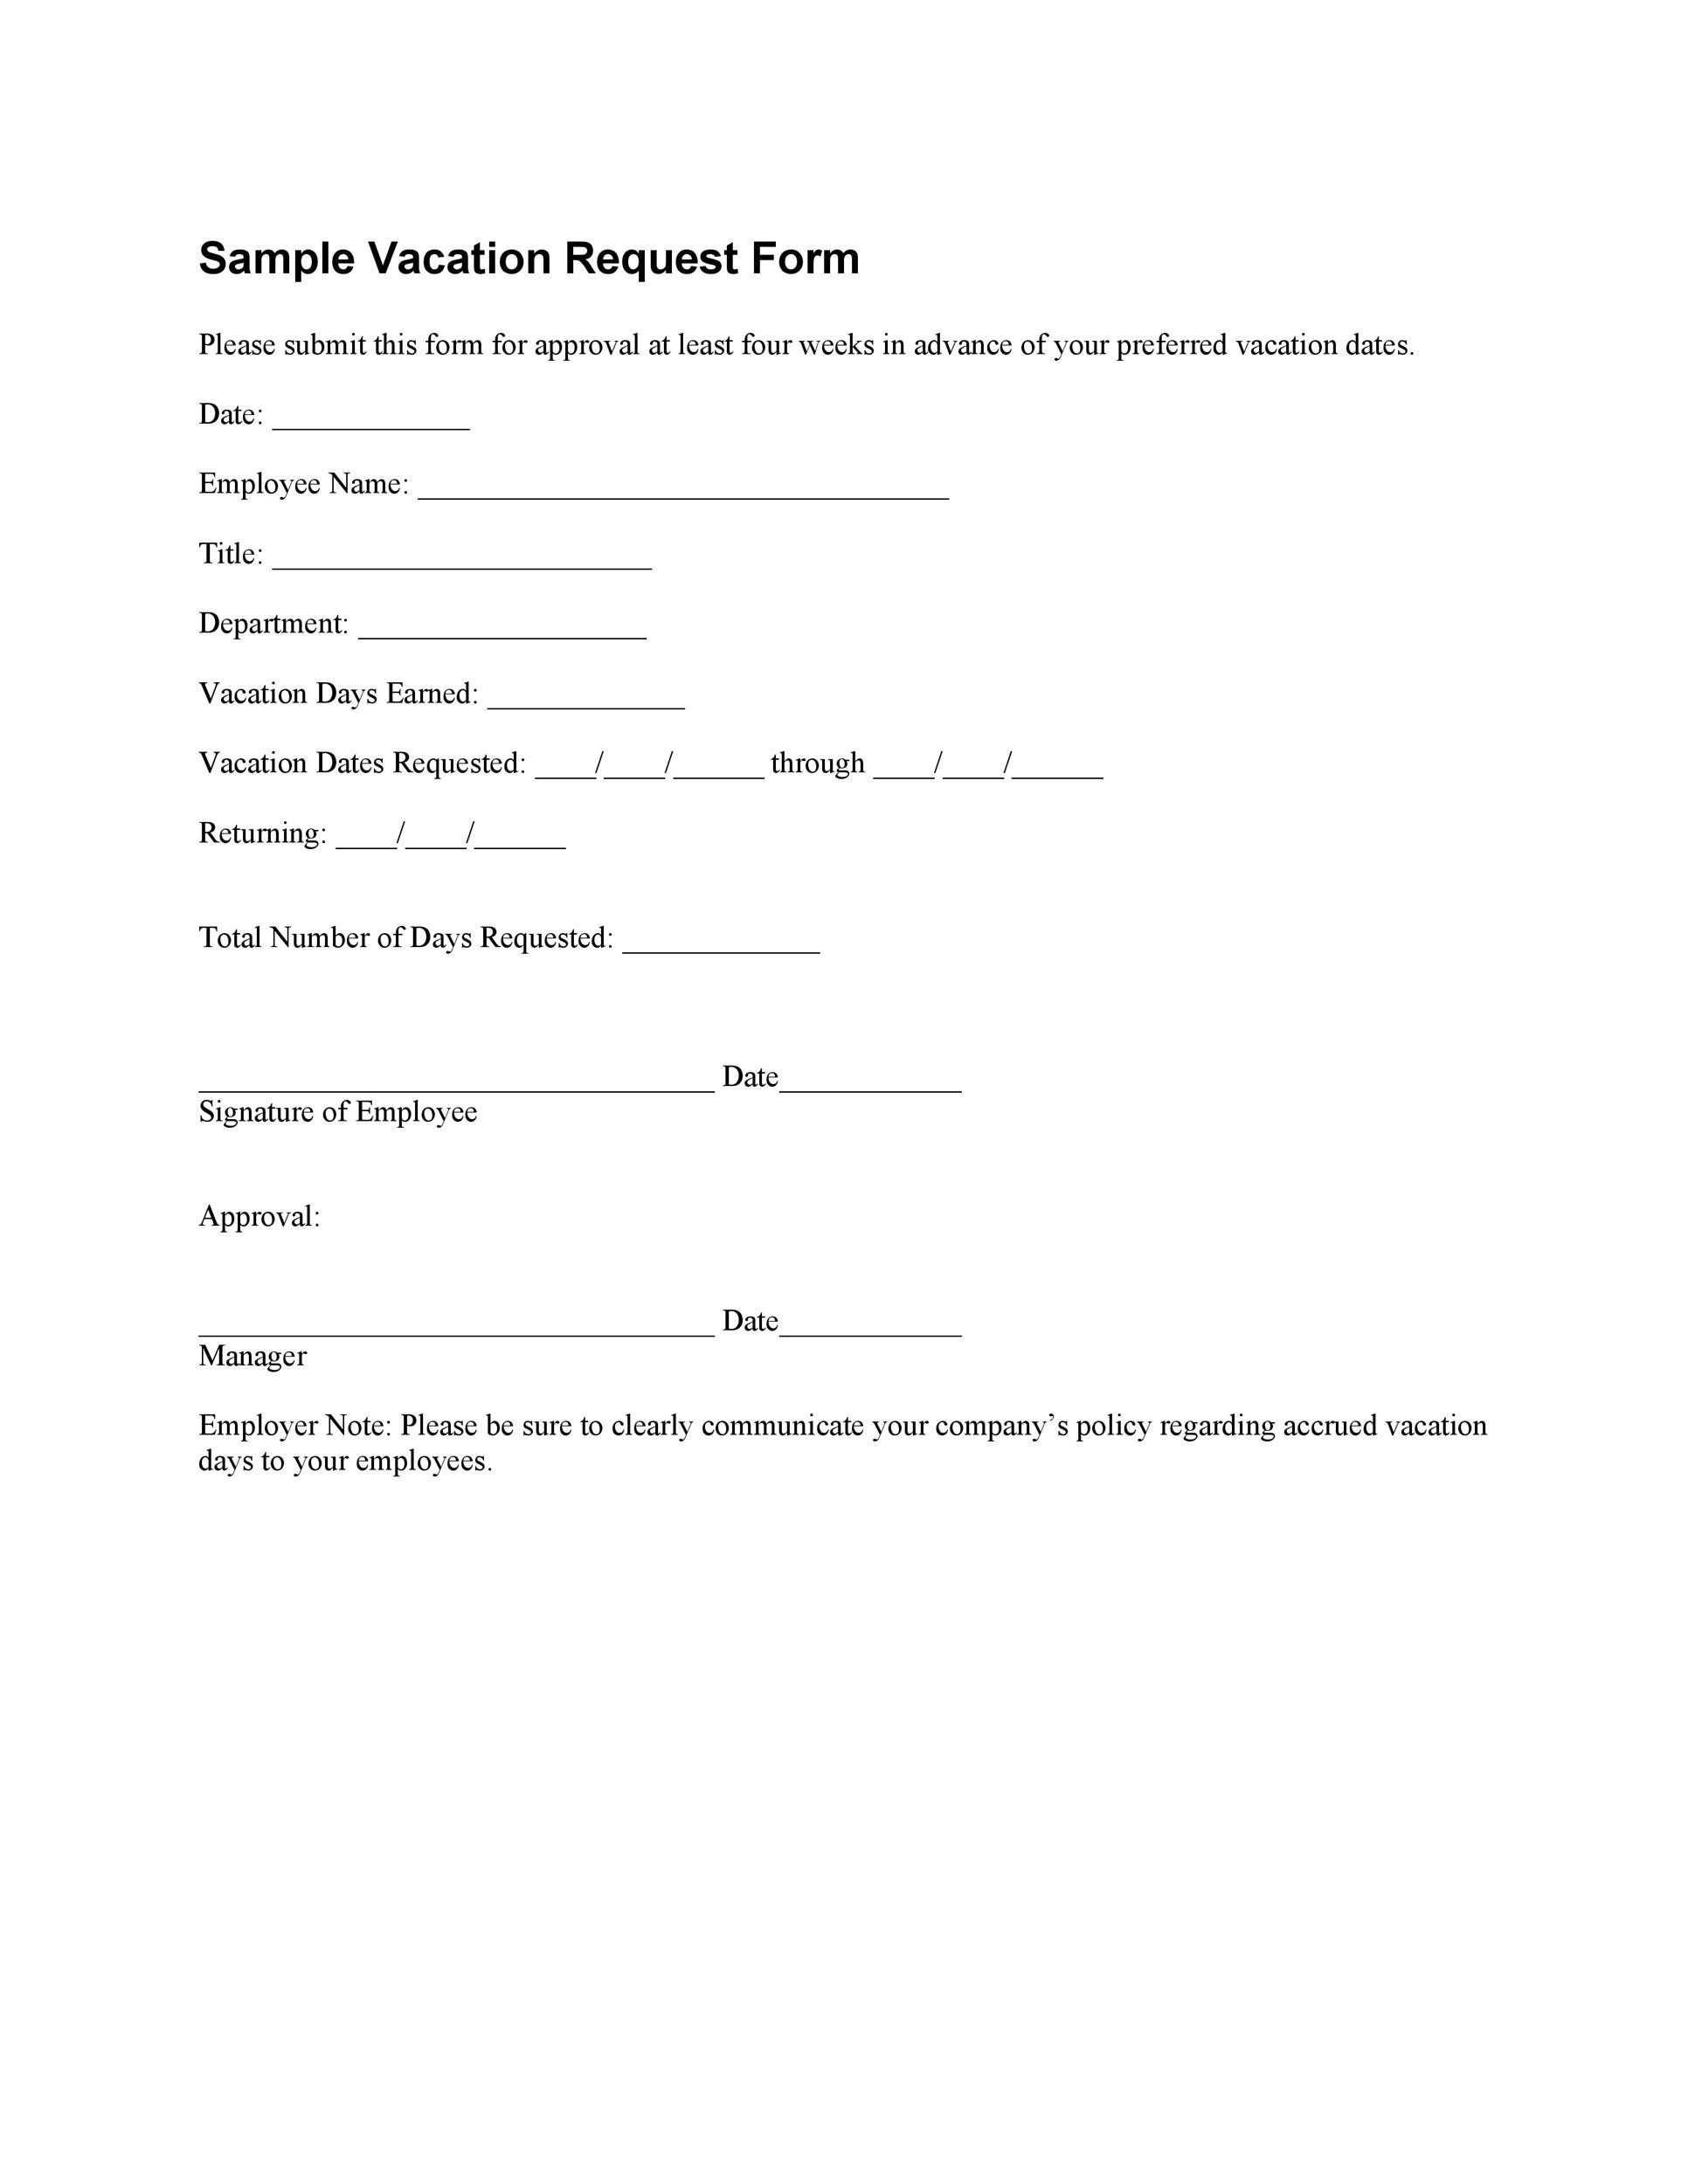 50 Professional Employee Vacation Request Forms Word ᐅ Template Lab